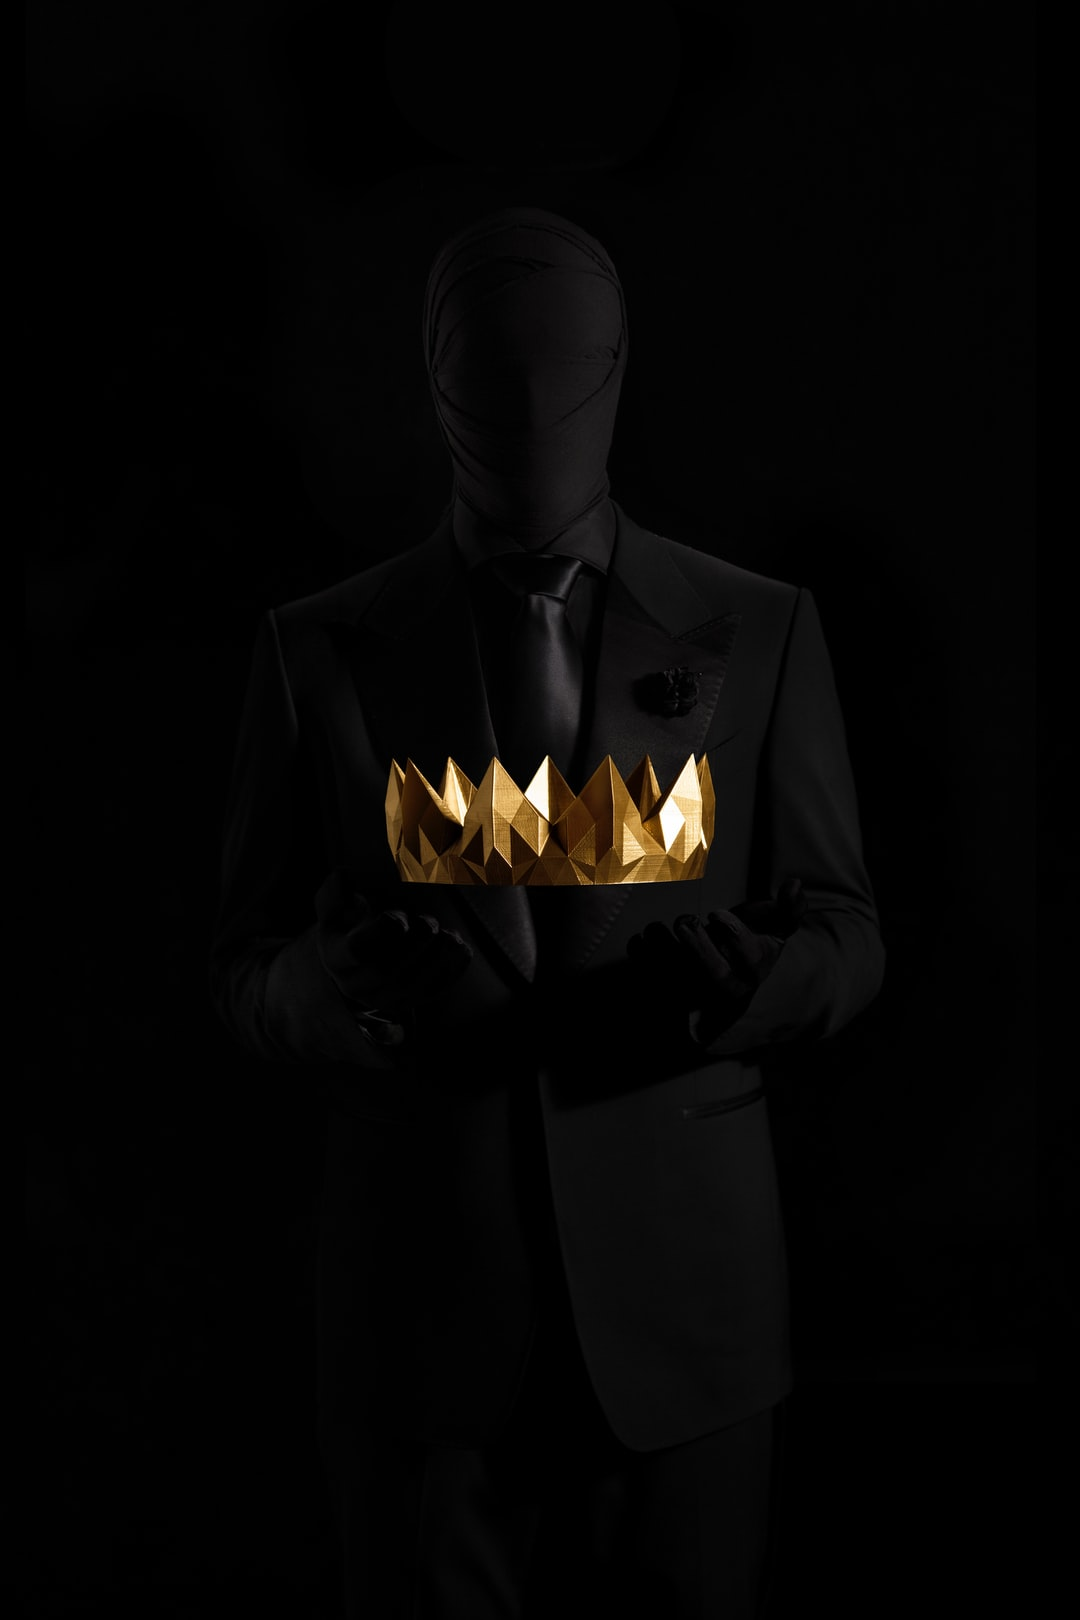 Silhouette holding gold crown